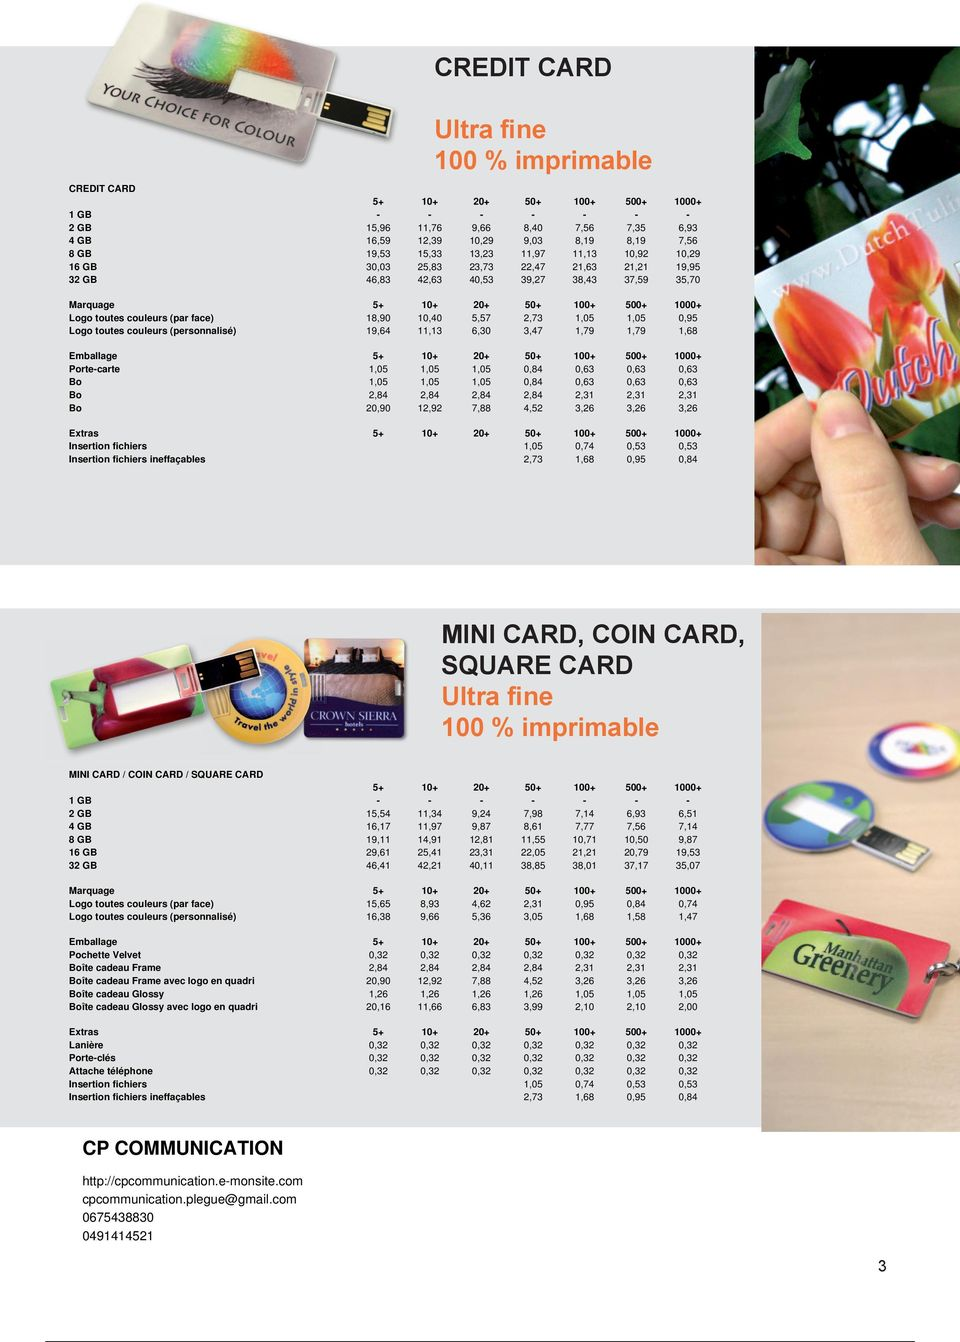 CARD Ultra fine 100 % imprimable MINI CARD / COIN CARD / SQUARE CARD 3 15,54 19,11 29,61 46,41 11,34 14,91 25,41 42,21 12,81